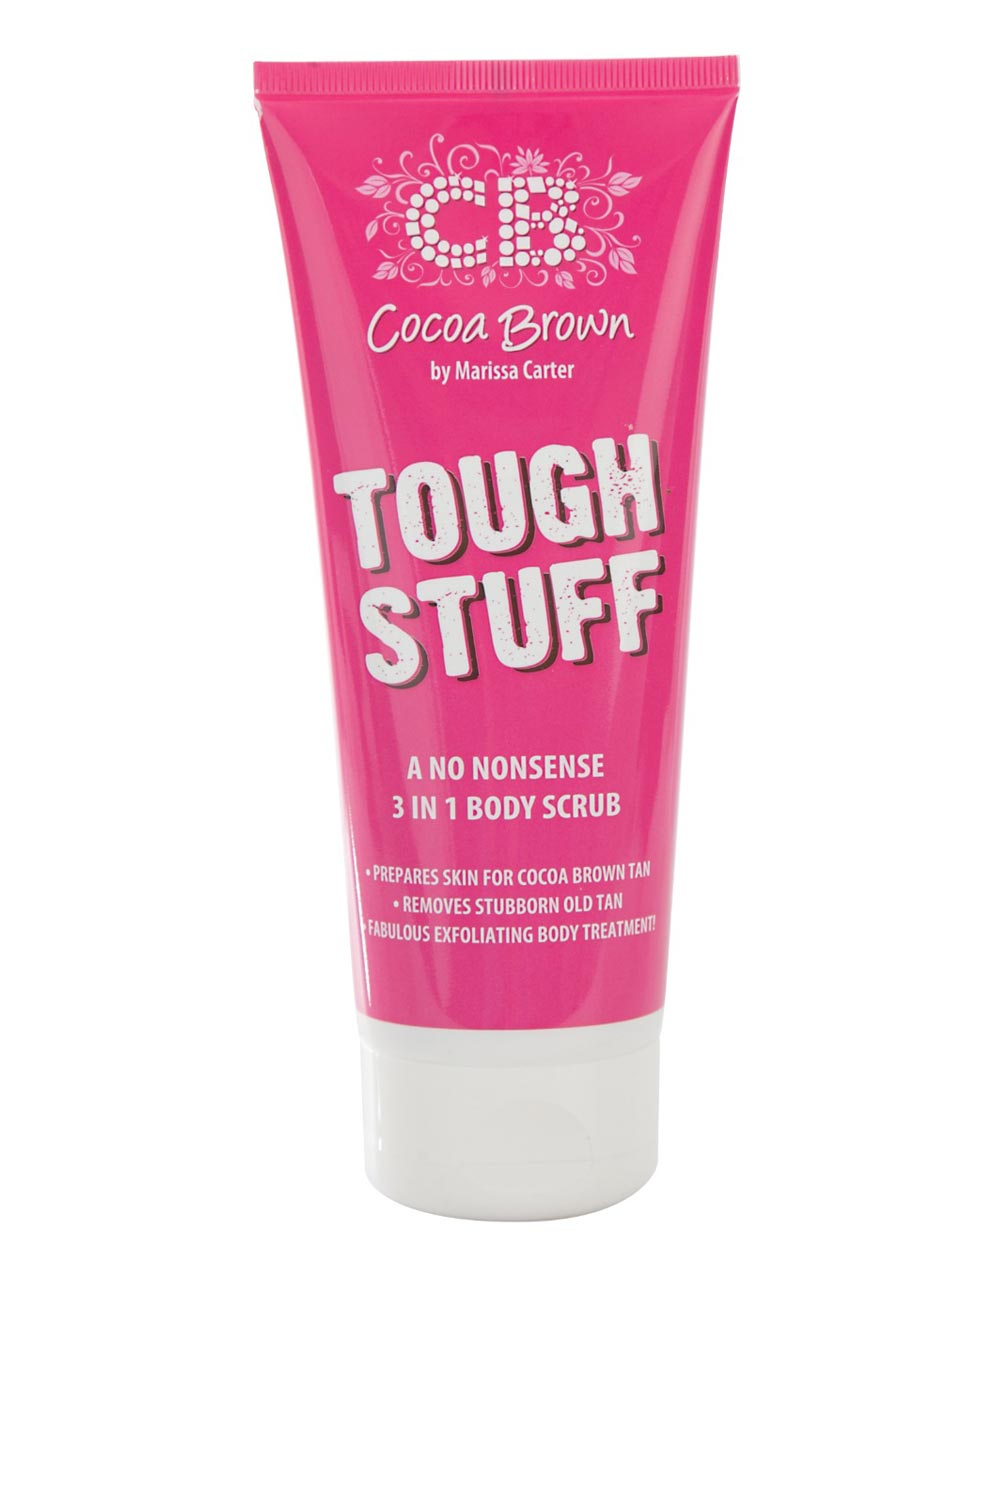 Cocoa Brown by Marissa Carter Lovely Tough Stuff 3 in 1 Body Scrub, 200ml